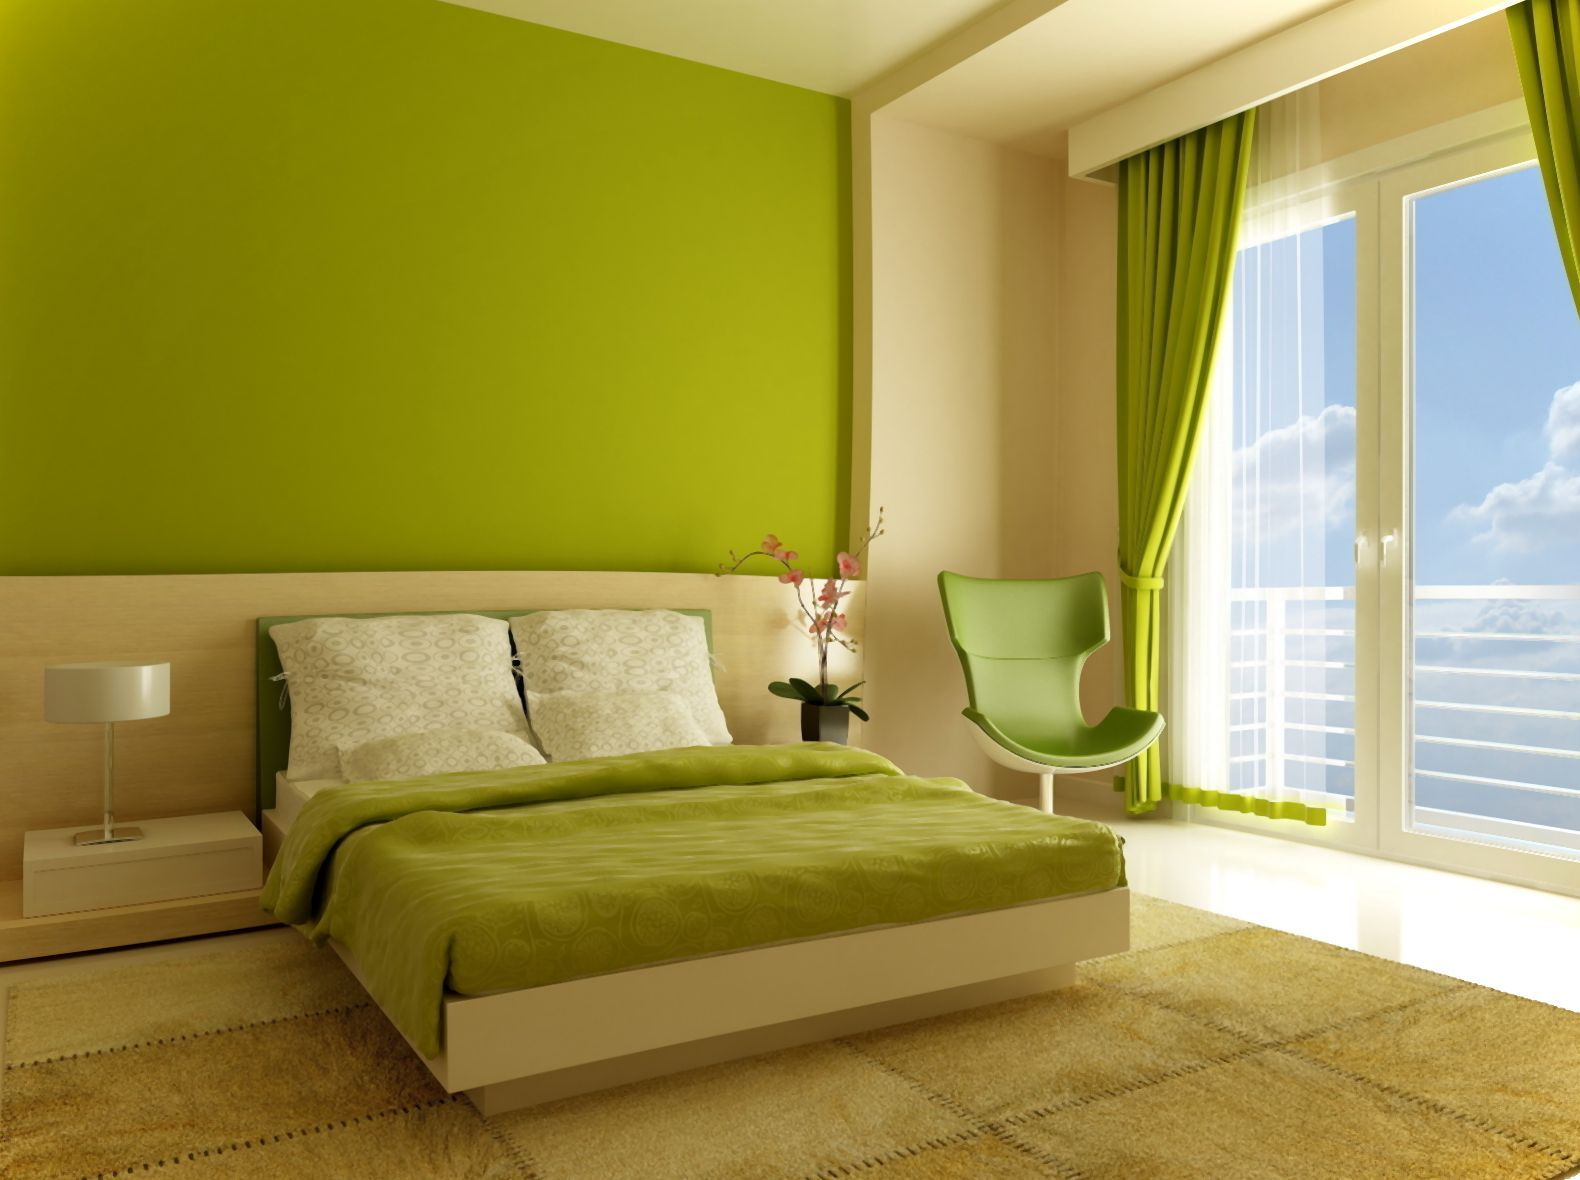 Interior Cheerful Green Bedroom Interior Decorating Idea With Minimalist Furniture And Cozy Green Chair Casual Green Colour Schemes Pictures Photos